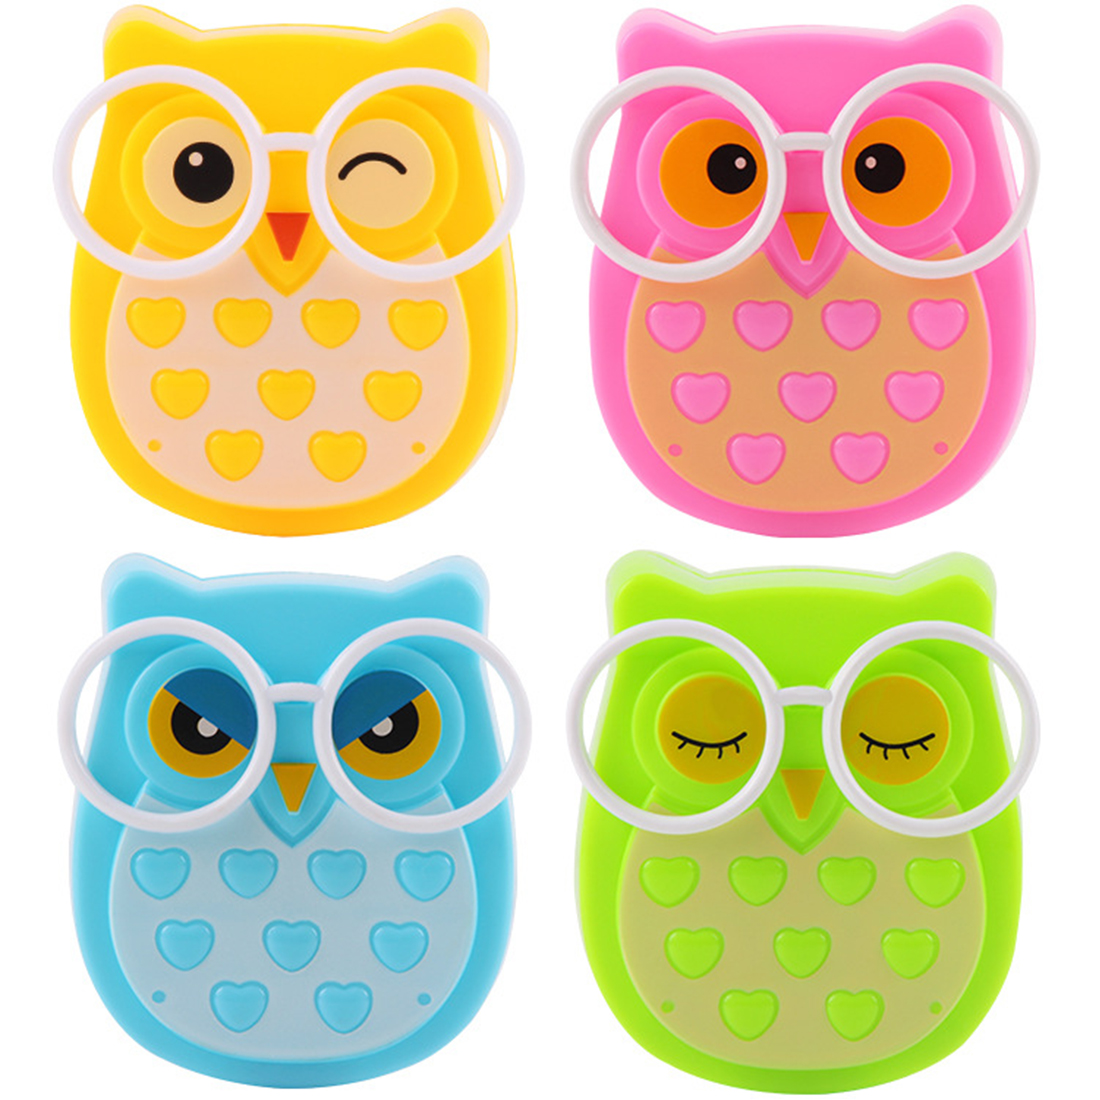 Mini Owl Led Night Light Auto Sensor Light Control Lamp US Plug Child Kids Baby Lighting Room Lamp Animal Socket